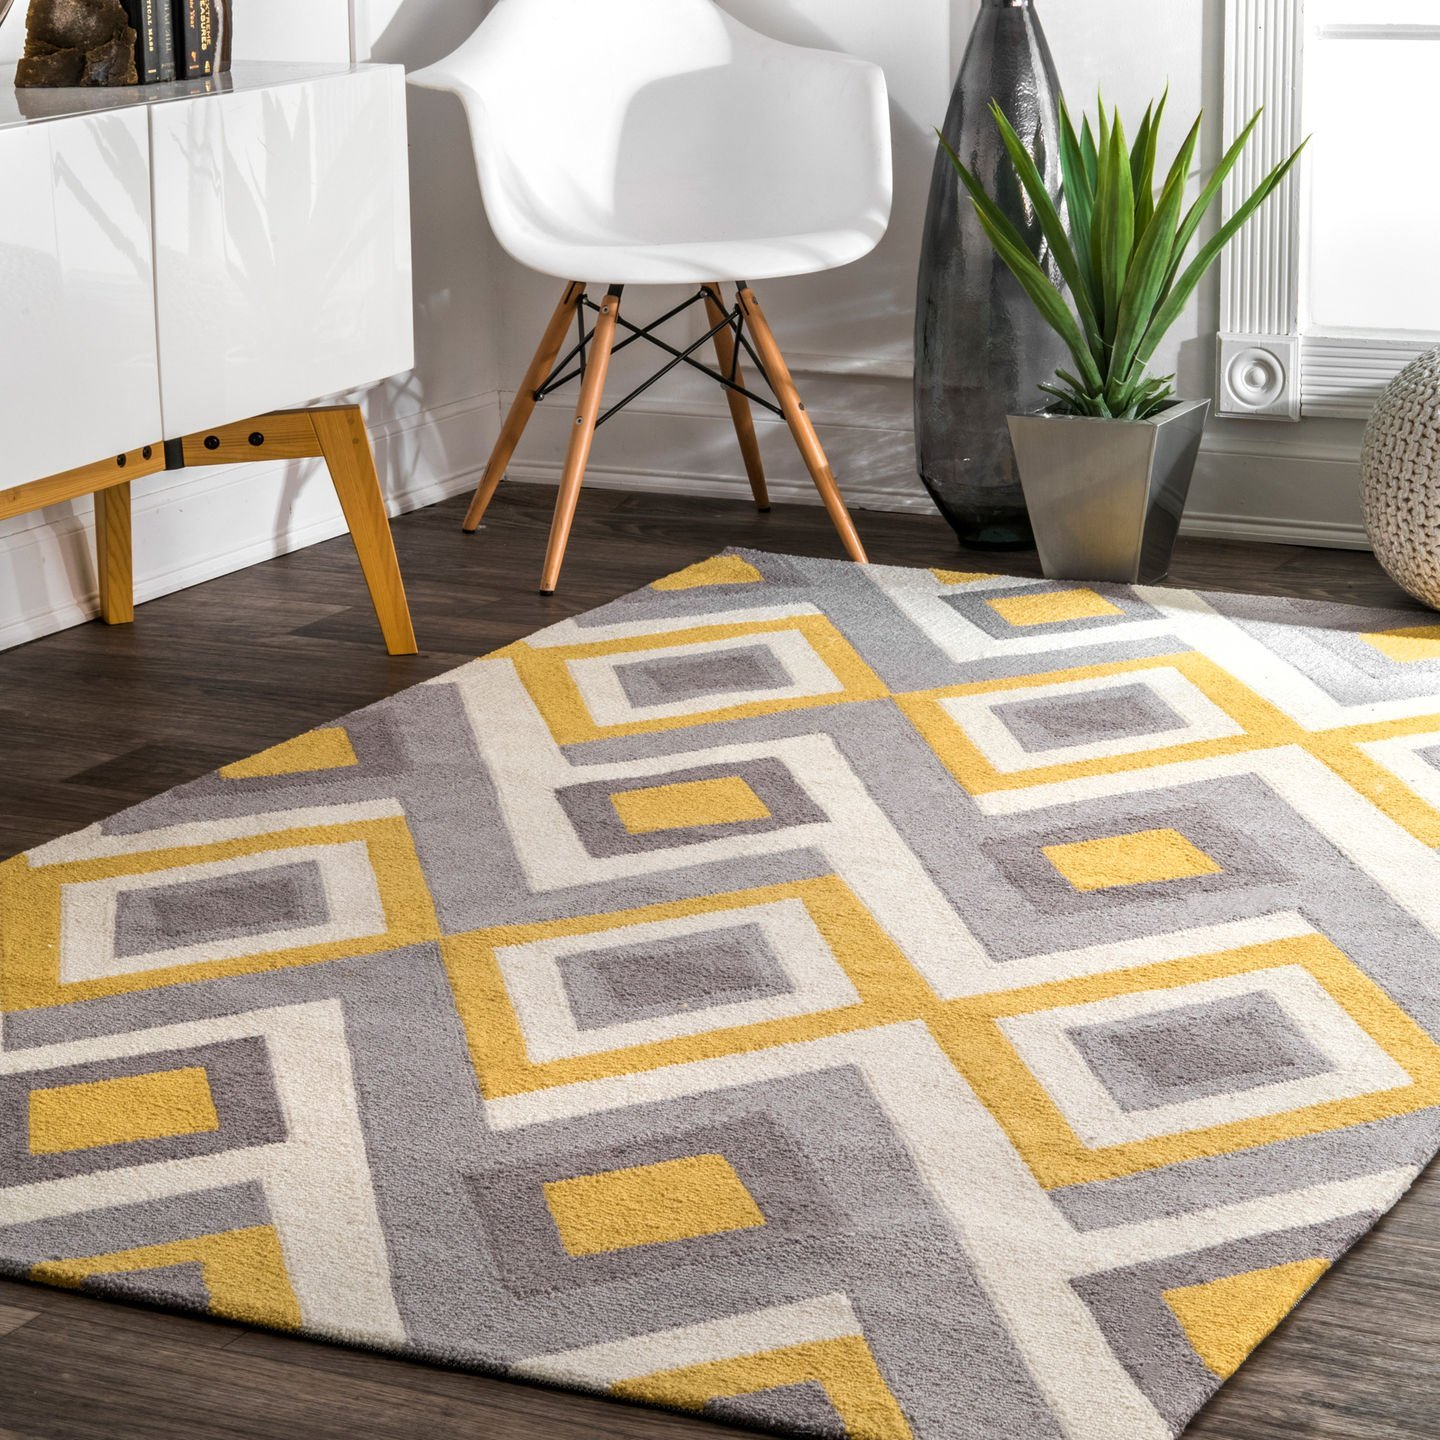 Nuloom Contemporary Handmade Area Rug 7 Feet 6 Inch By 9 For 242 Usually 299 99